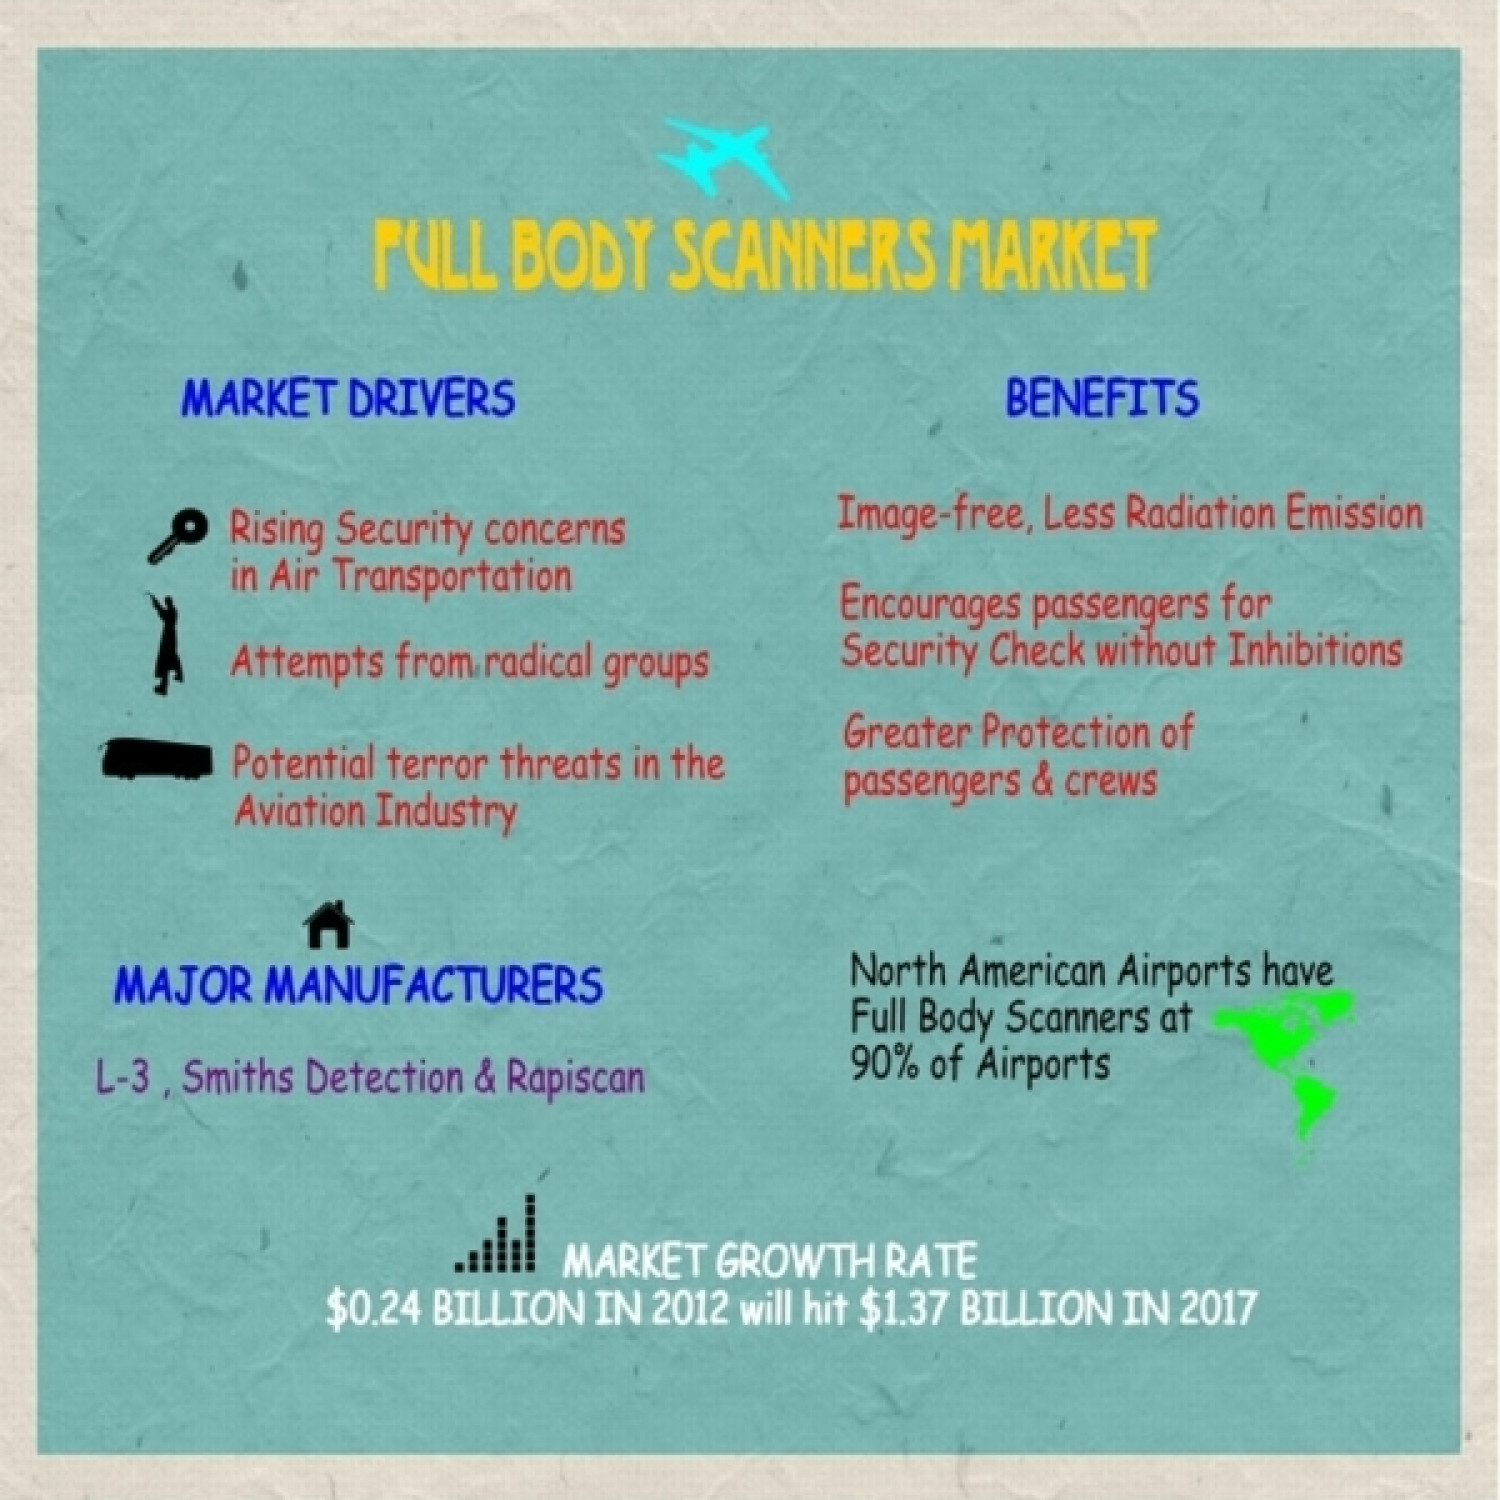 Market Research - MarketsandMarkets - Full Body Scanners Market Infographic